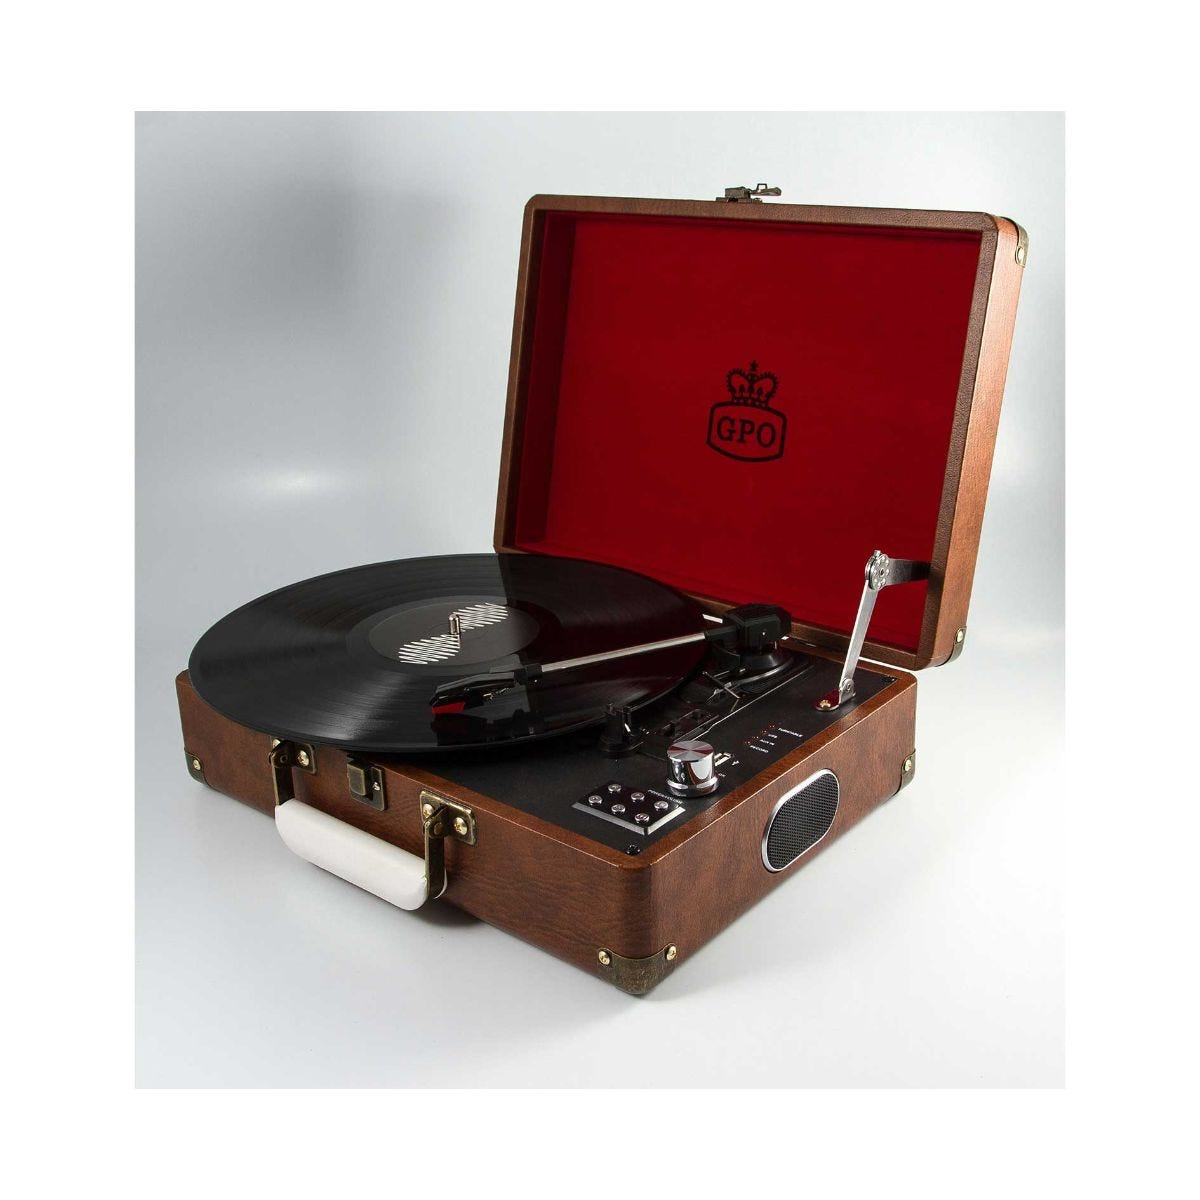 Image of GPO Attache Record Player Brown, Brown